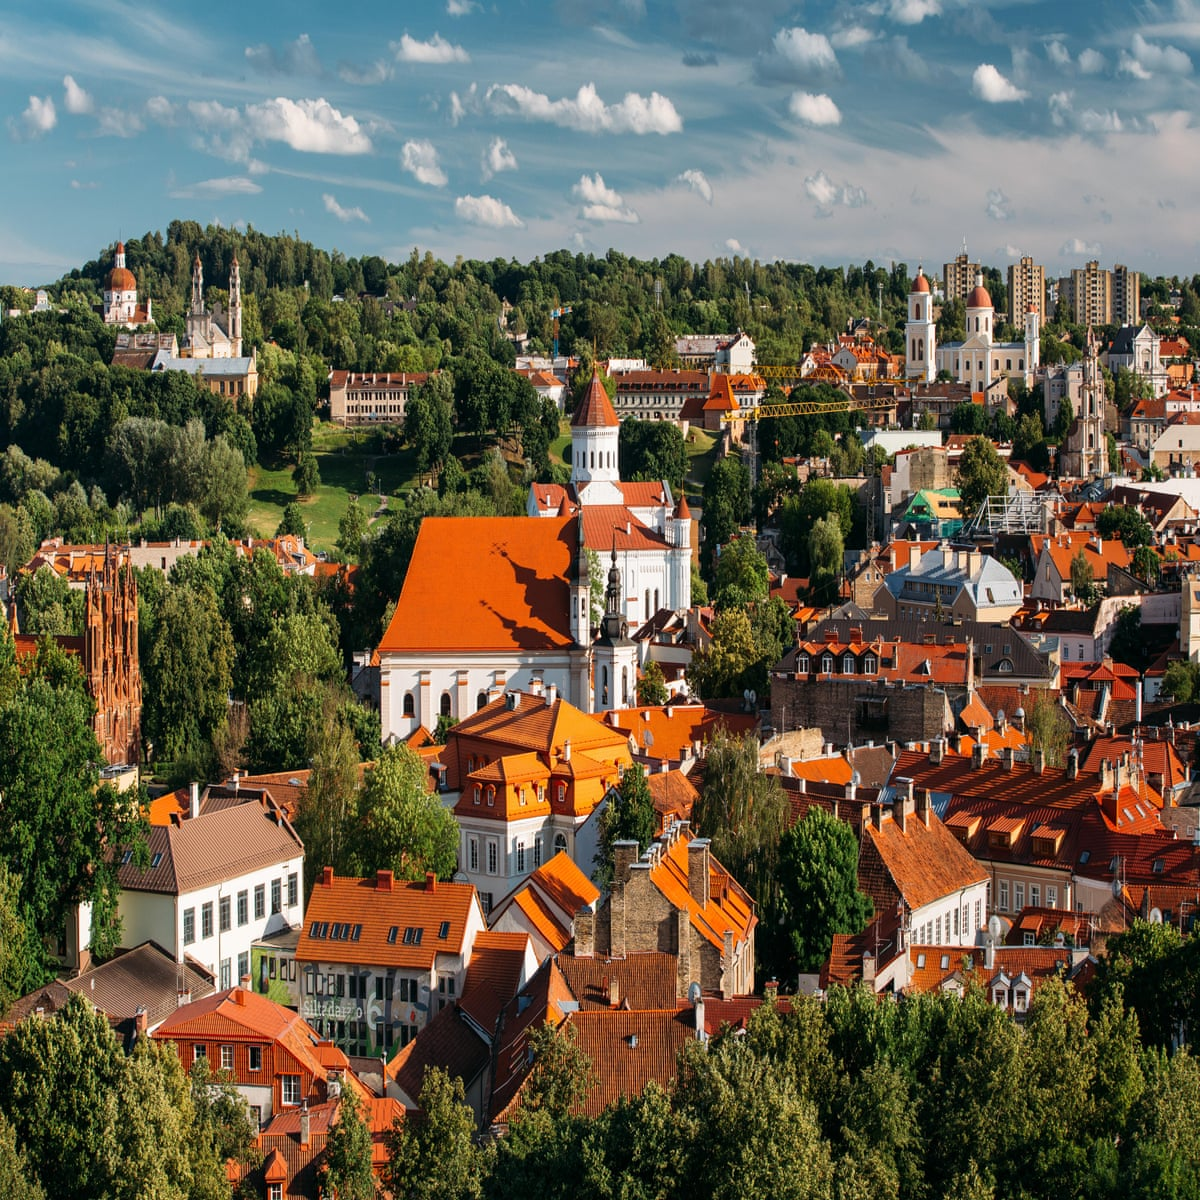 A local's guide to Vilnius, Lithuania: 10 top tips